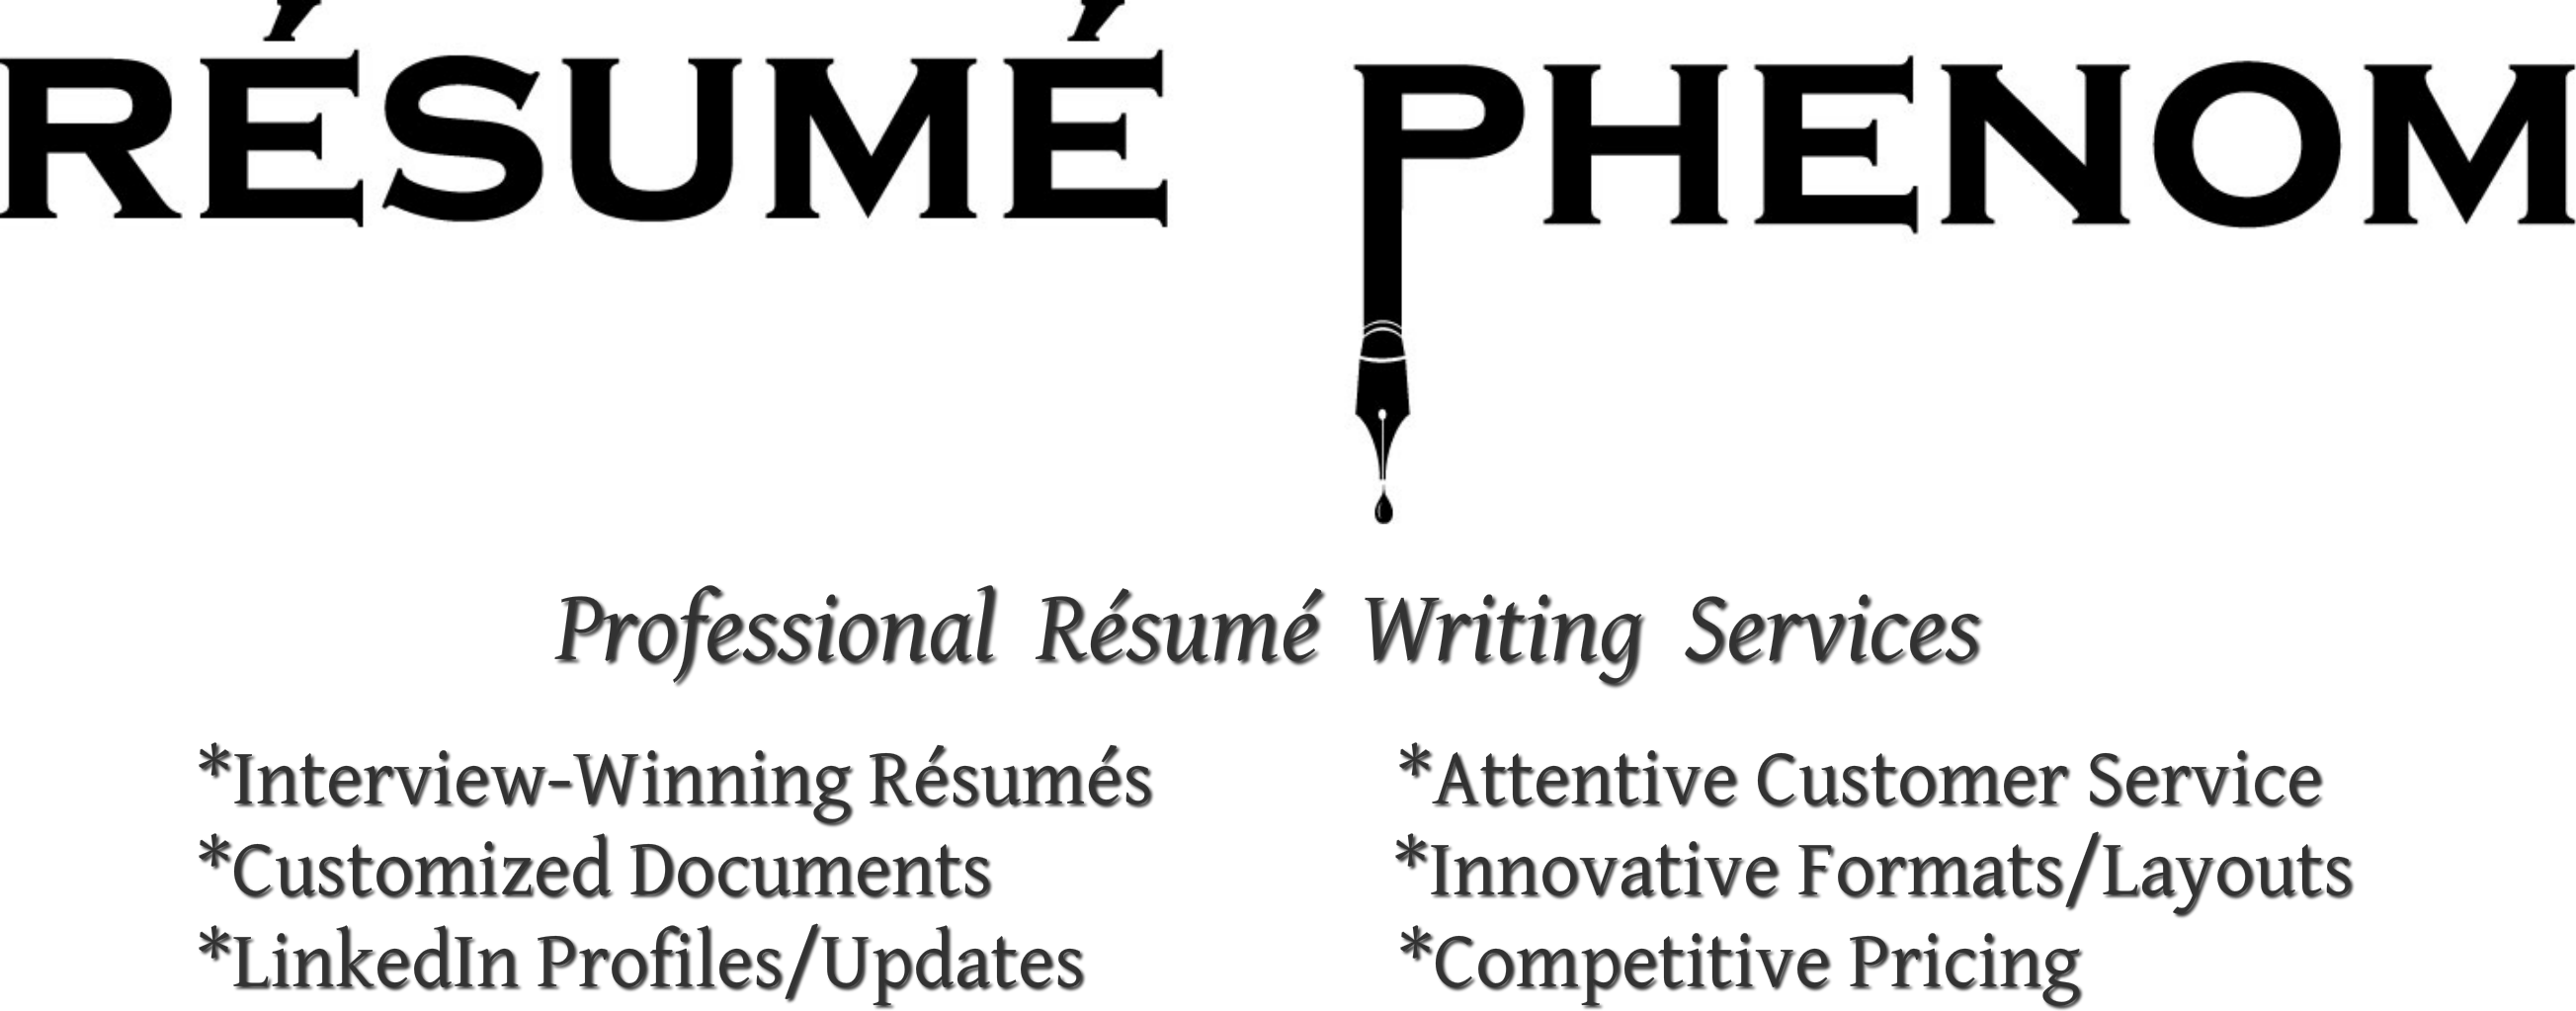 resume phenom  llc - professional resume writing services